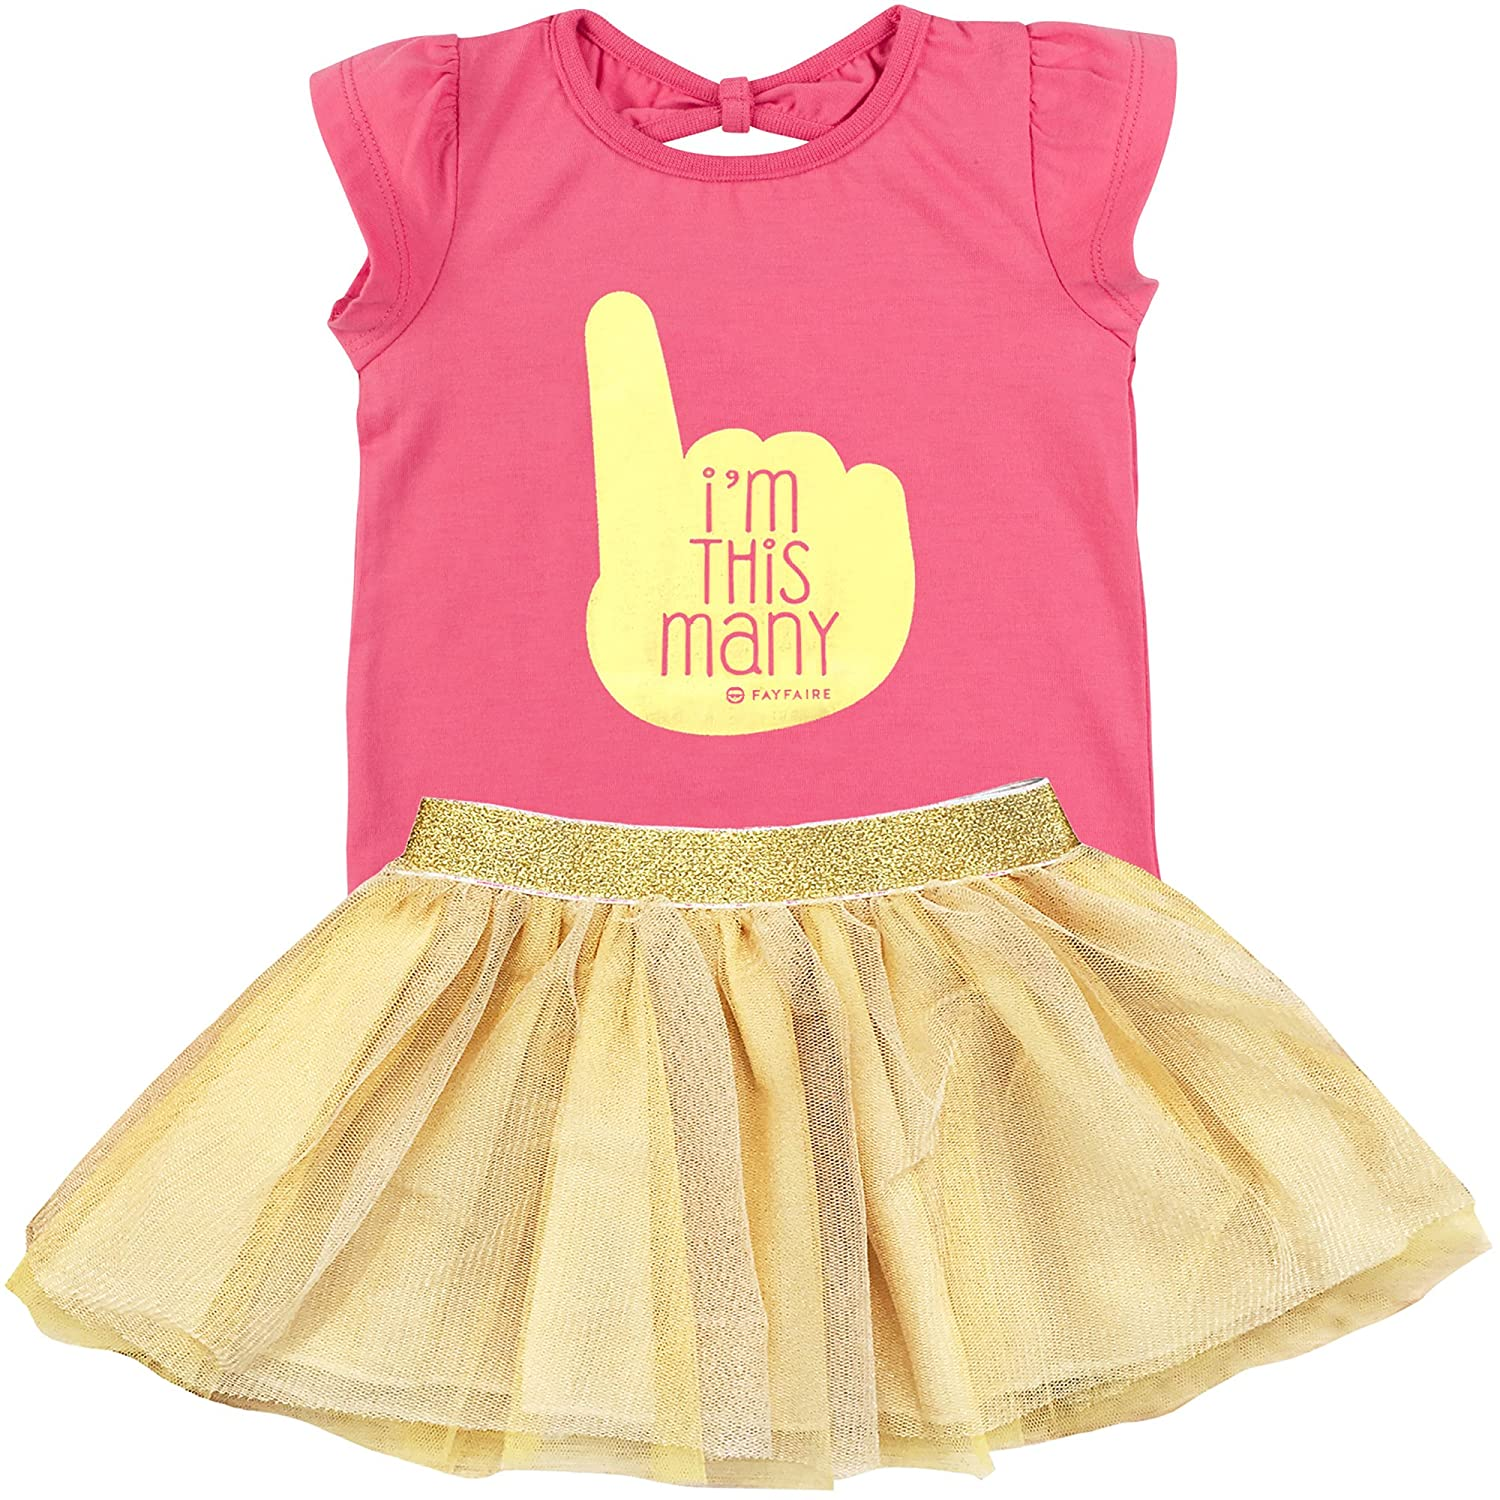 Fayfaire First Birthday Shirt Outfit: Boutique Quality 1st Bday Girl I'm This Many 12-18M